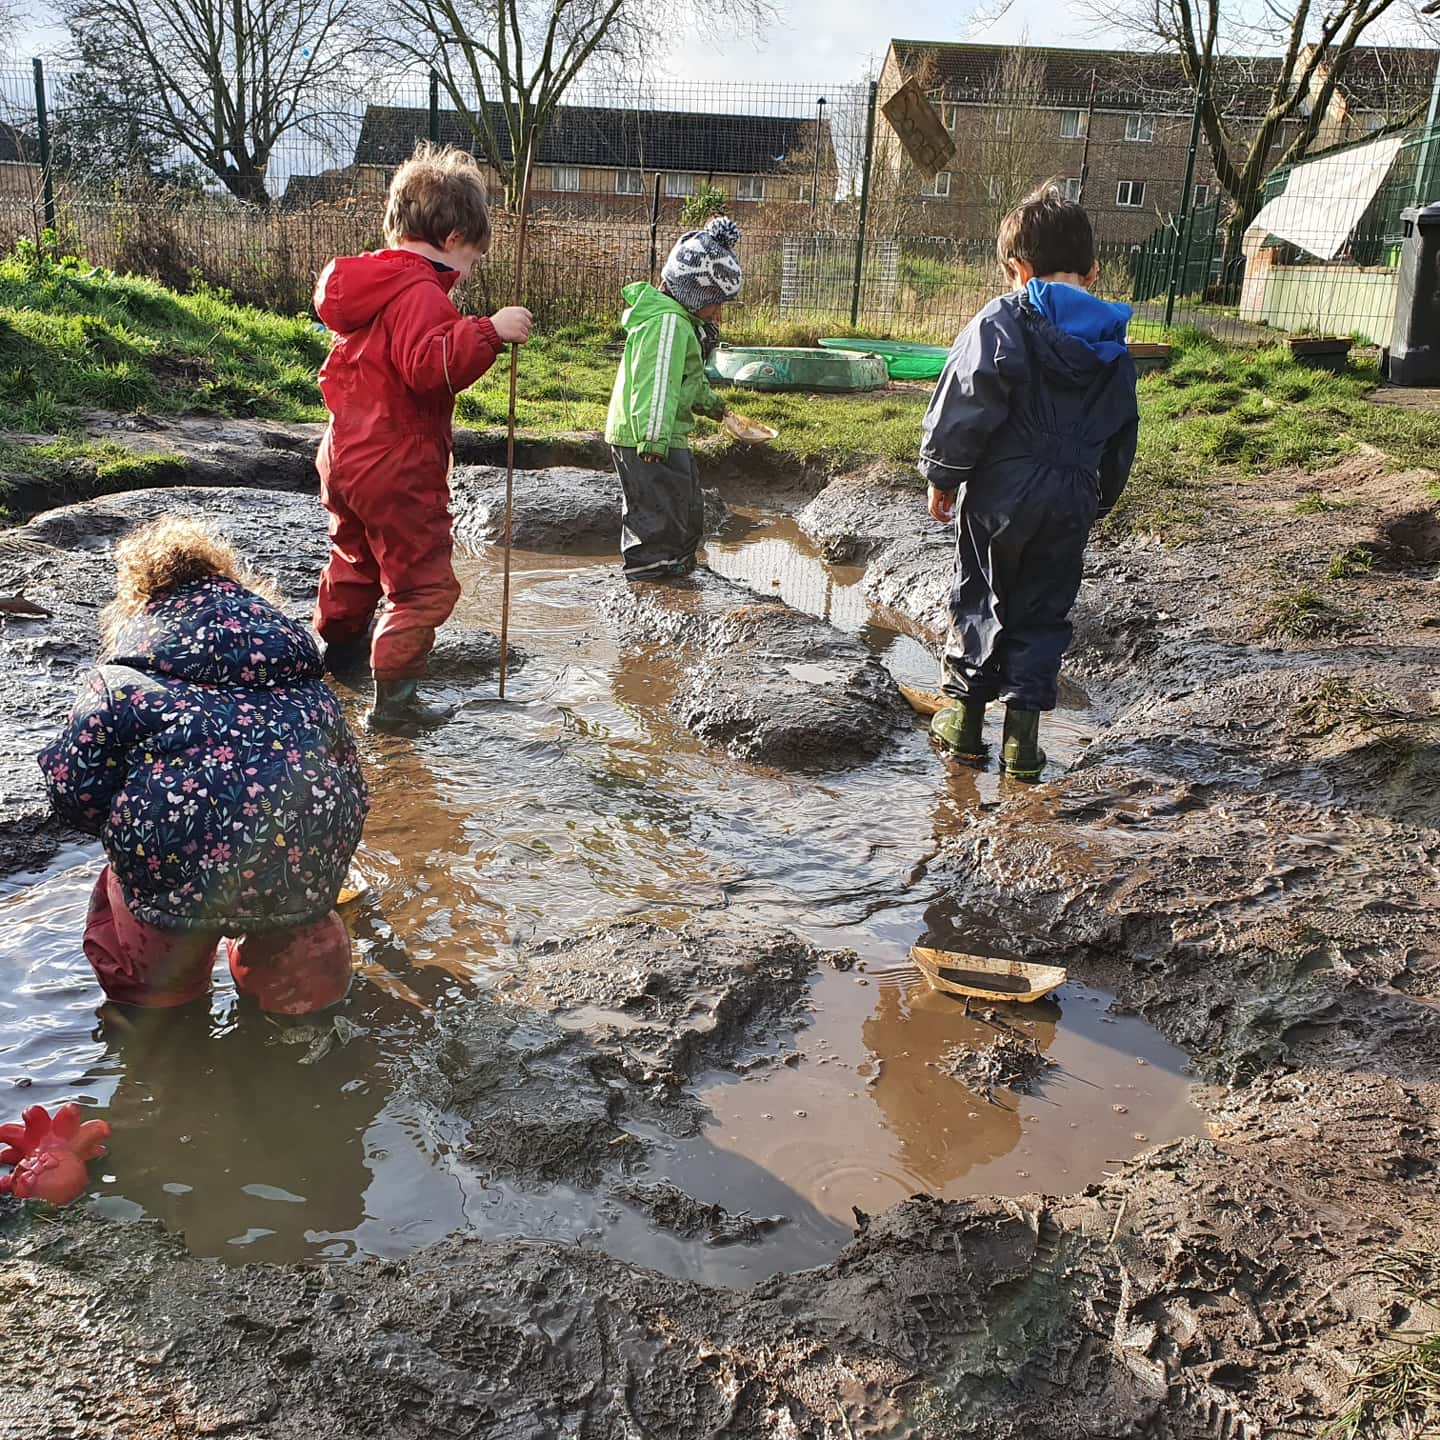 4 children in waterproof clothes playing in mud